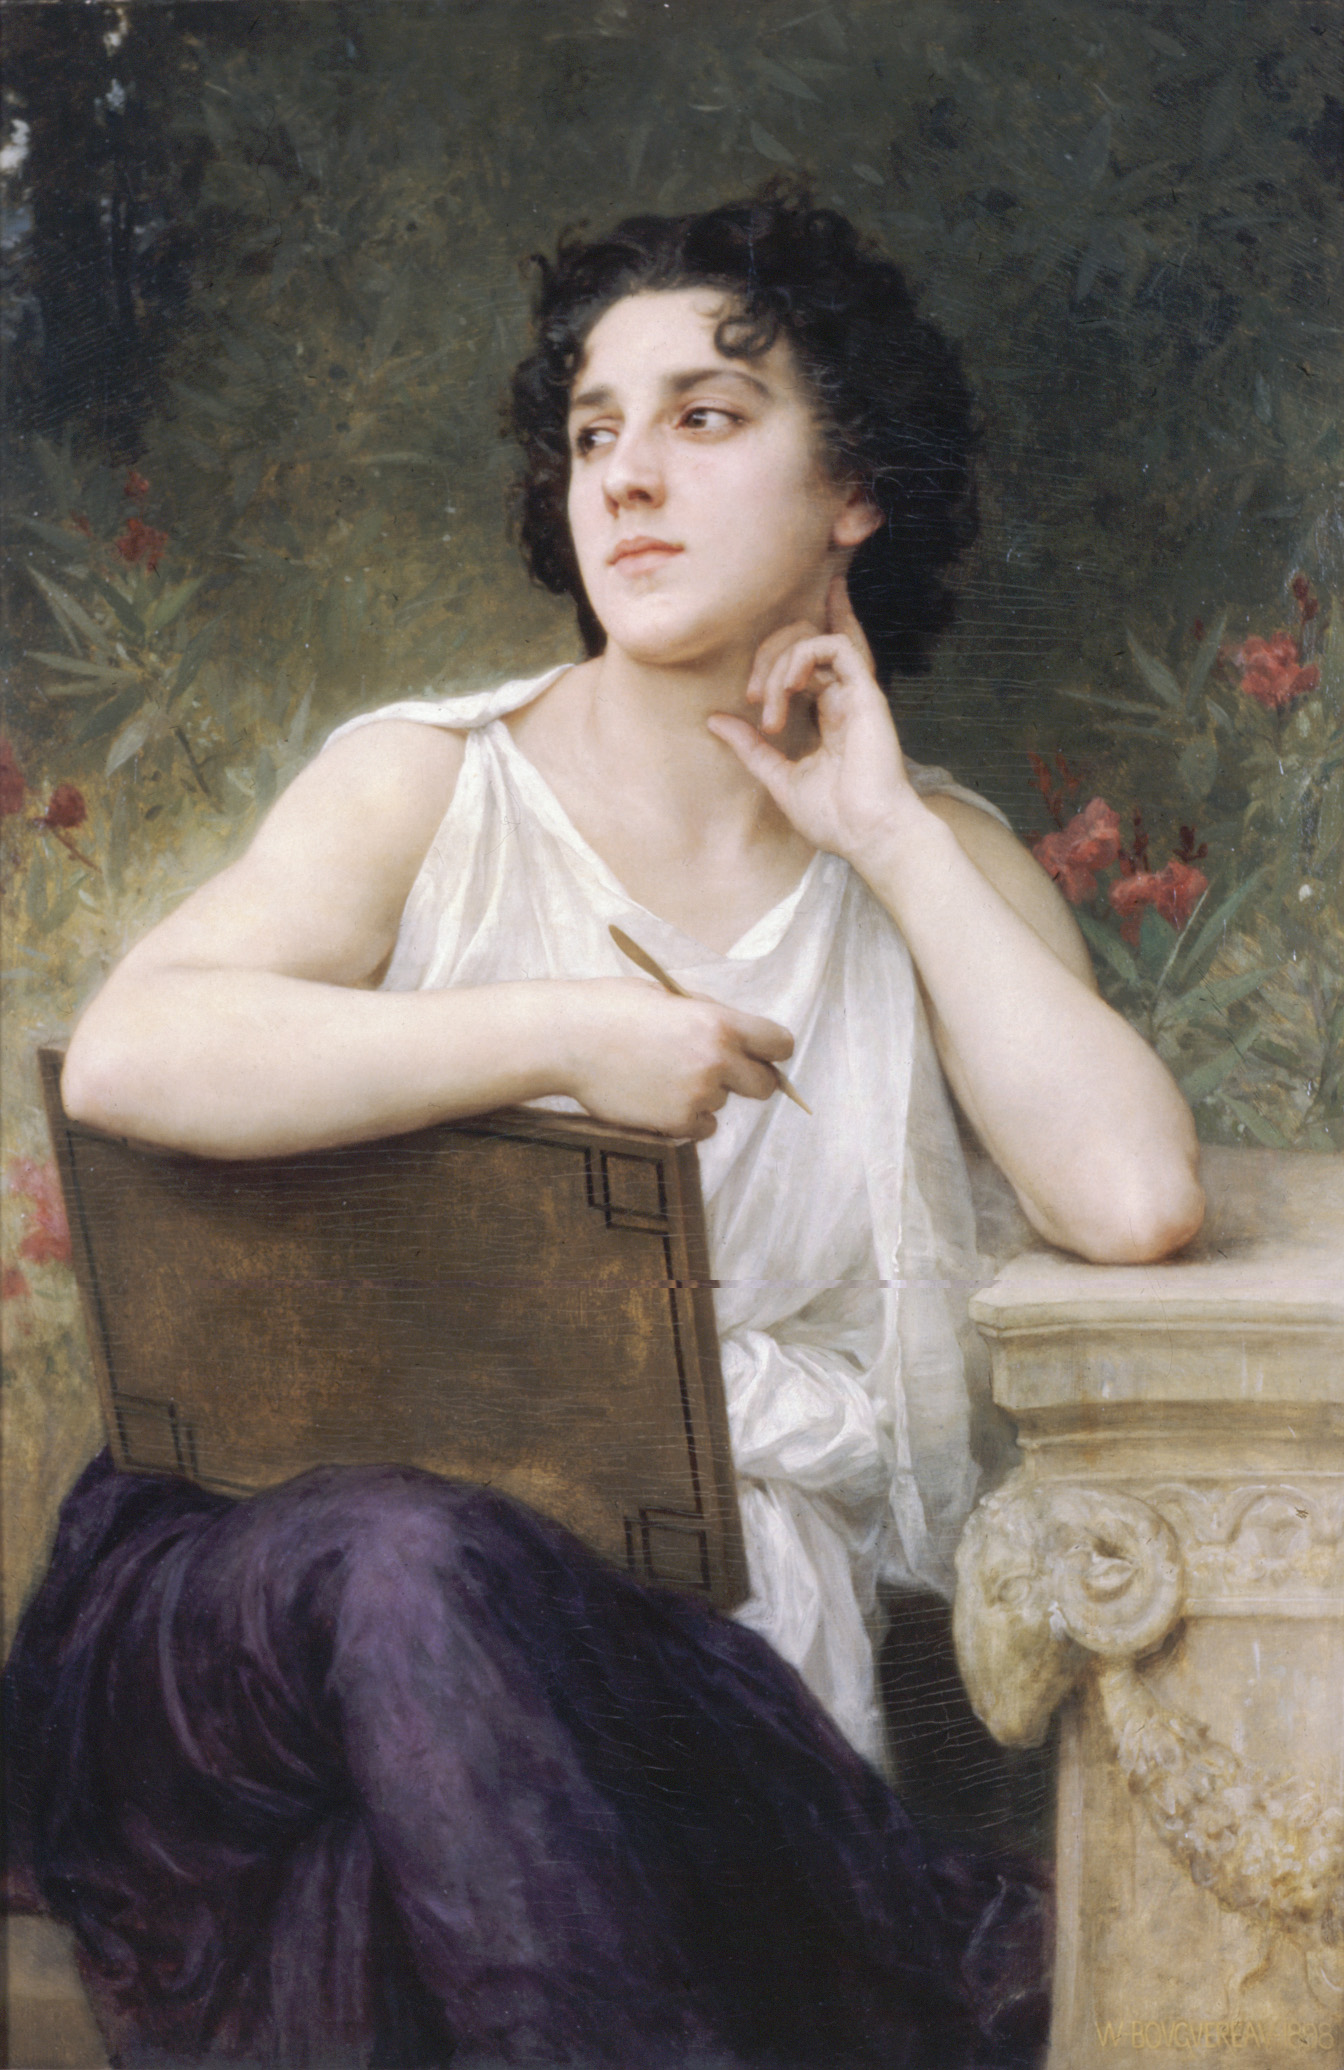 Woman oil painting,Inspiration 1898 By Bouguereau,Oil ...